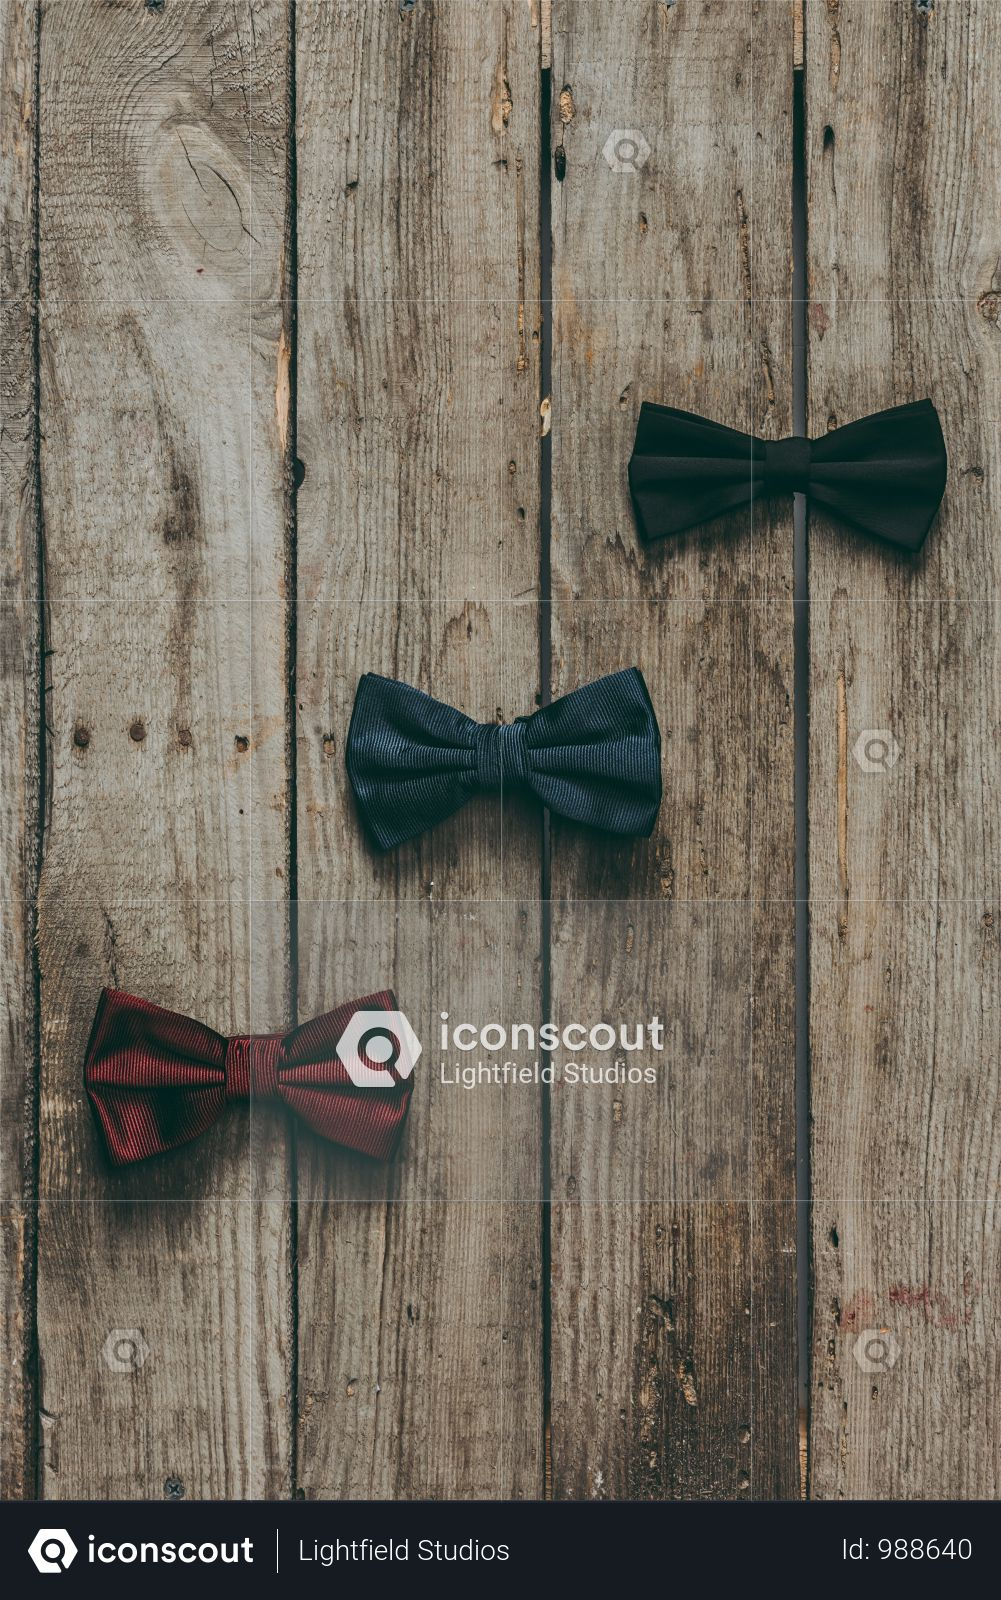 Top View Of Classic Bow Ties On Wooden Tabletop Photo